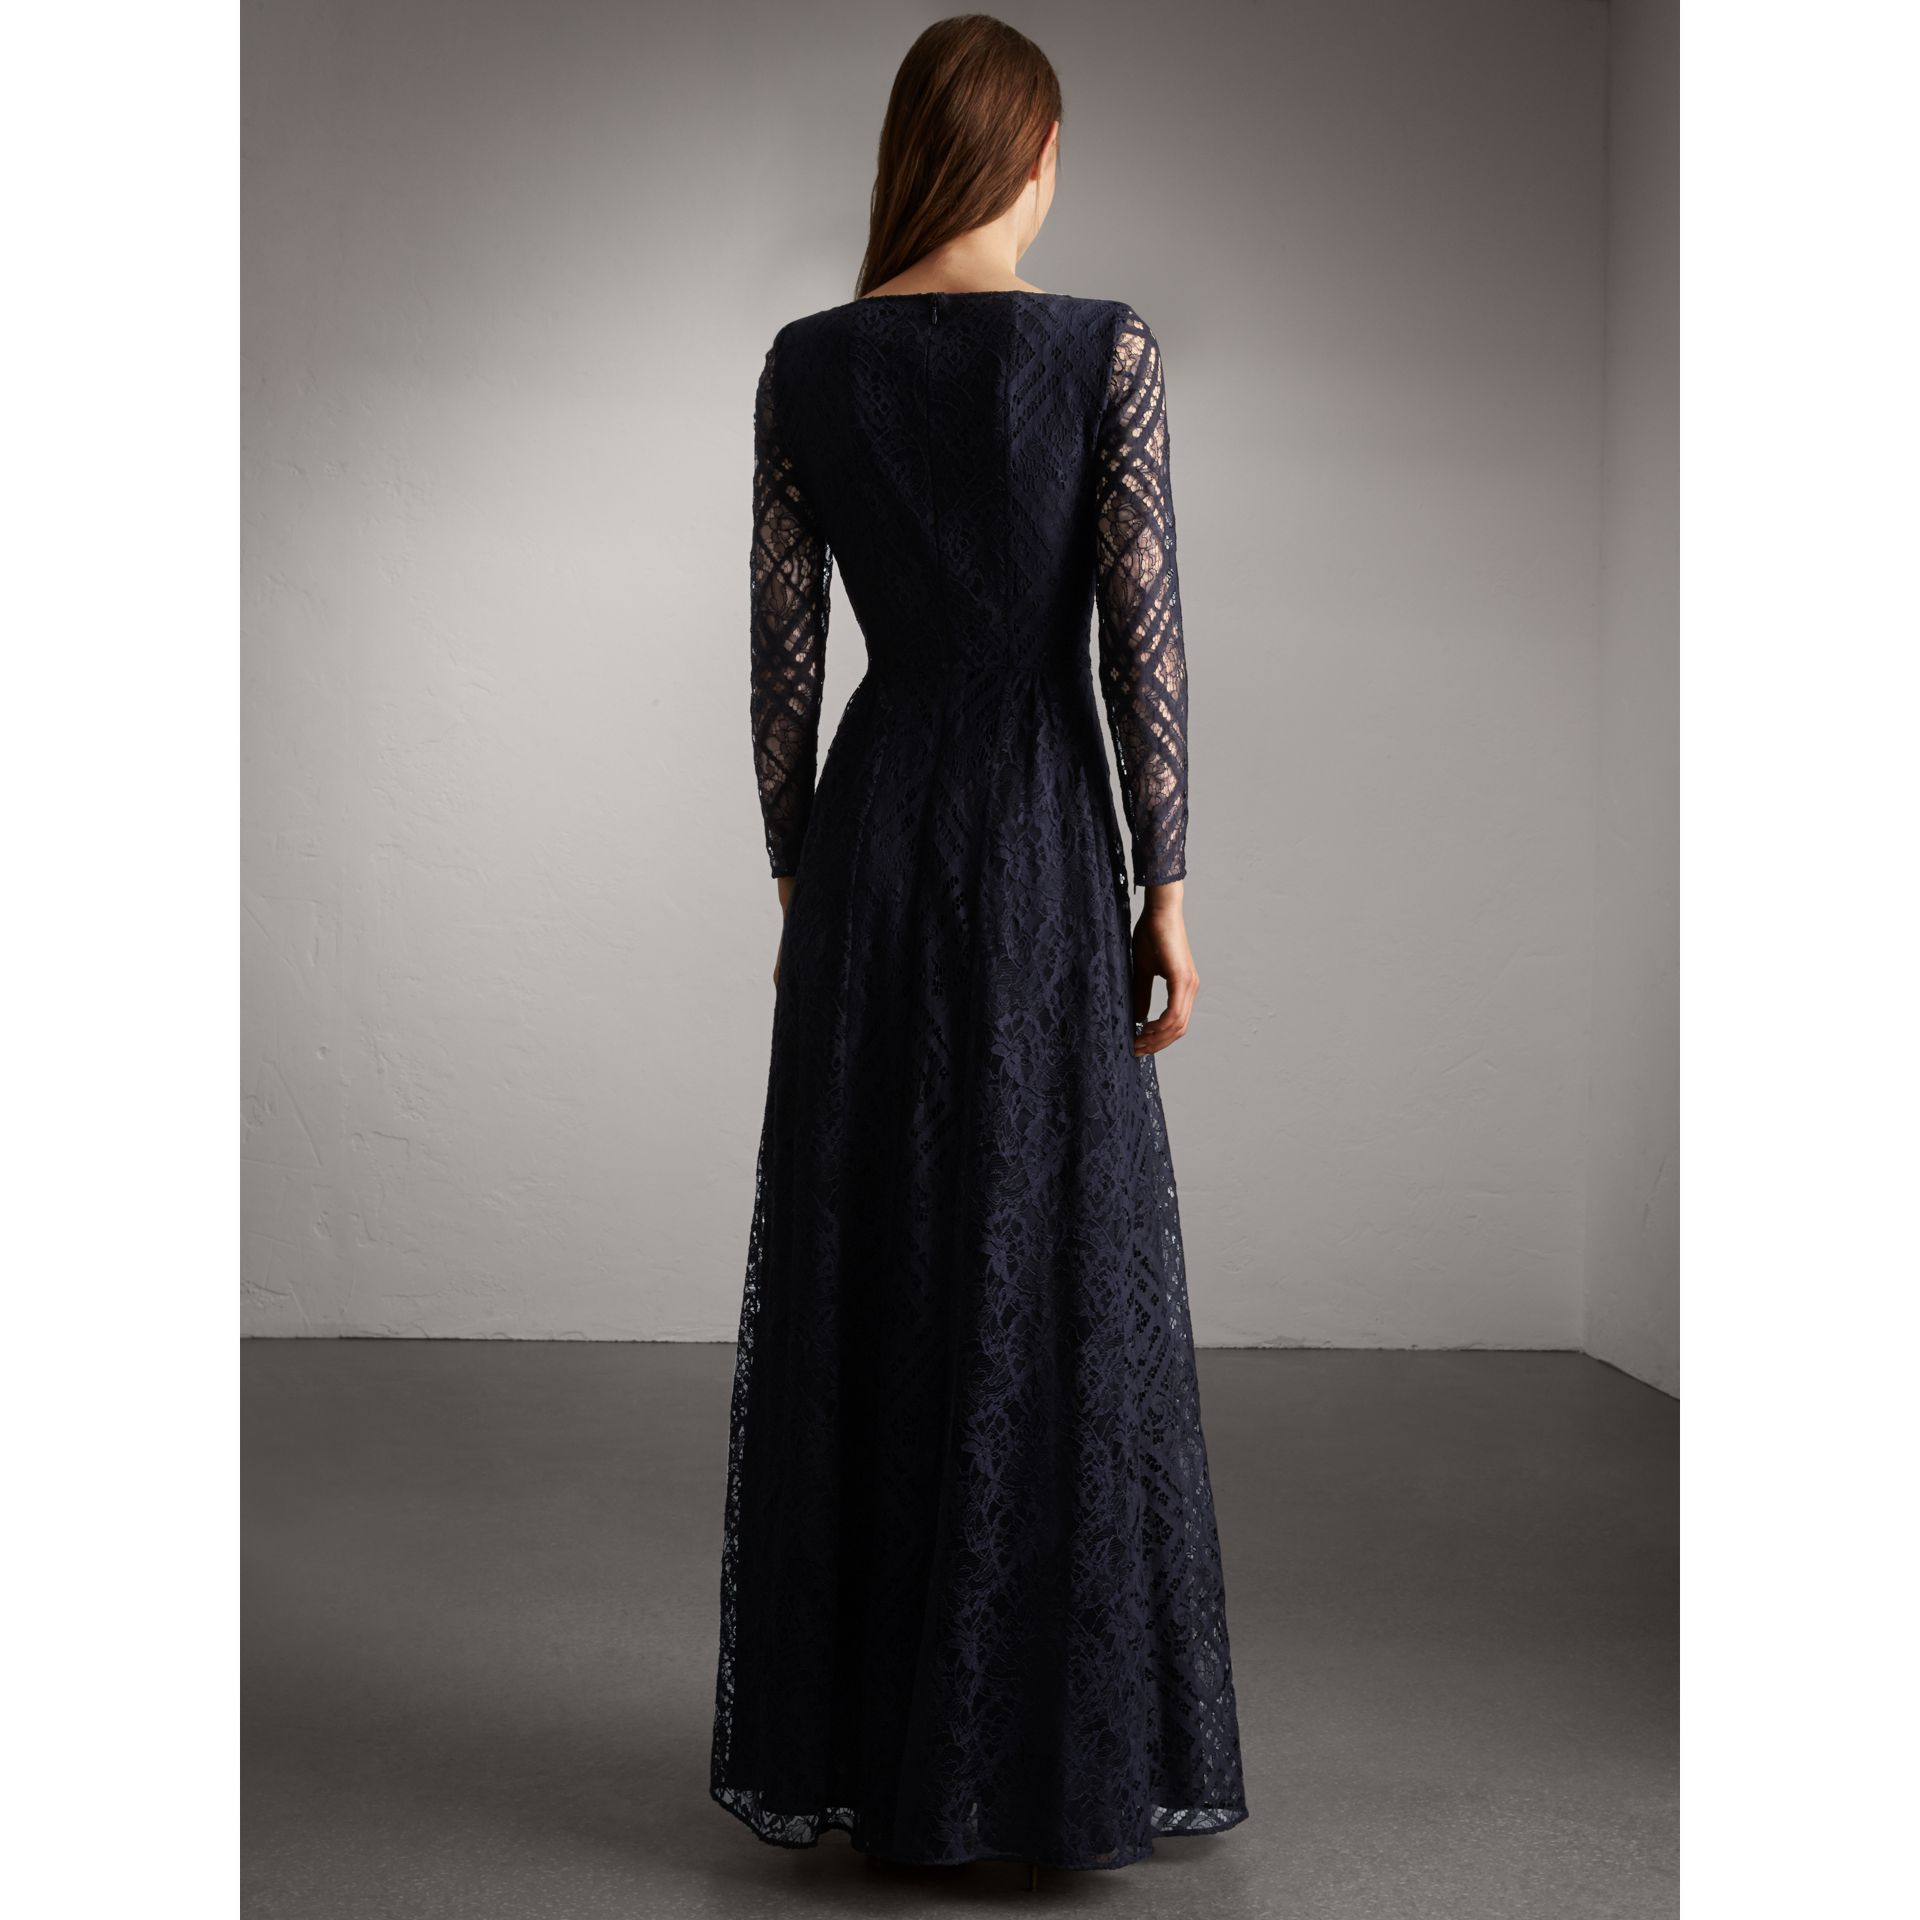 Check Lace Floor-length Dress in Navy - Women | Burberry - gallery image 3